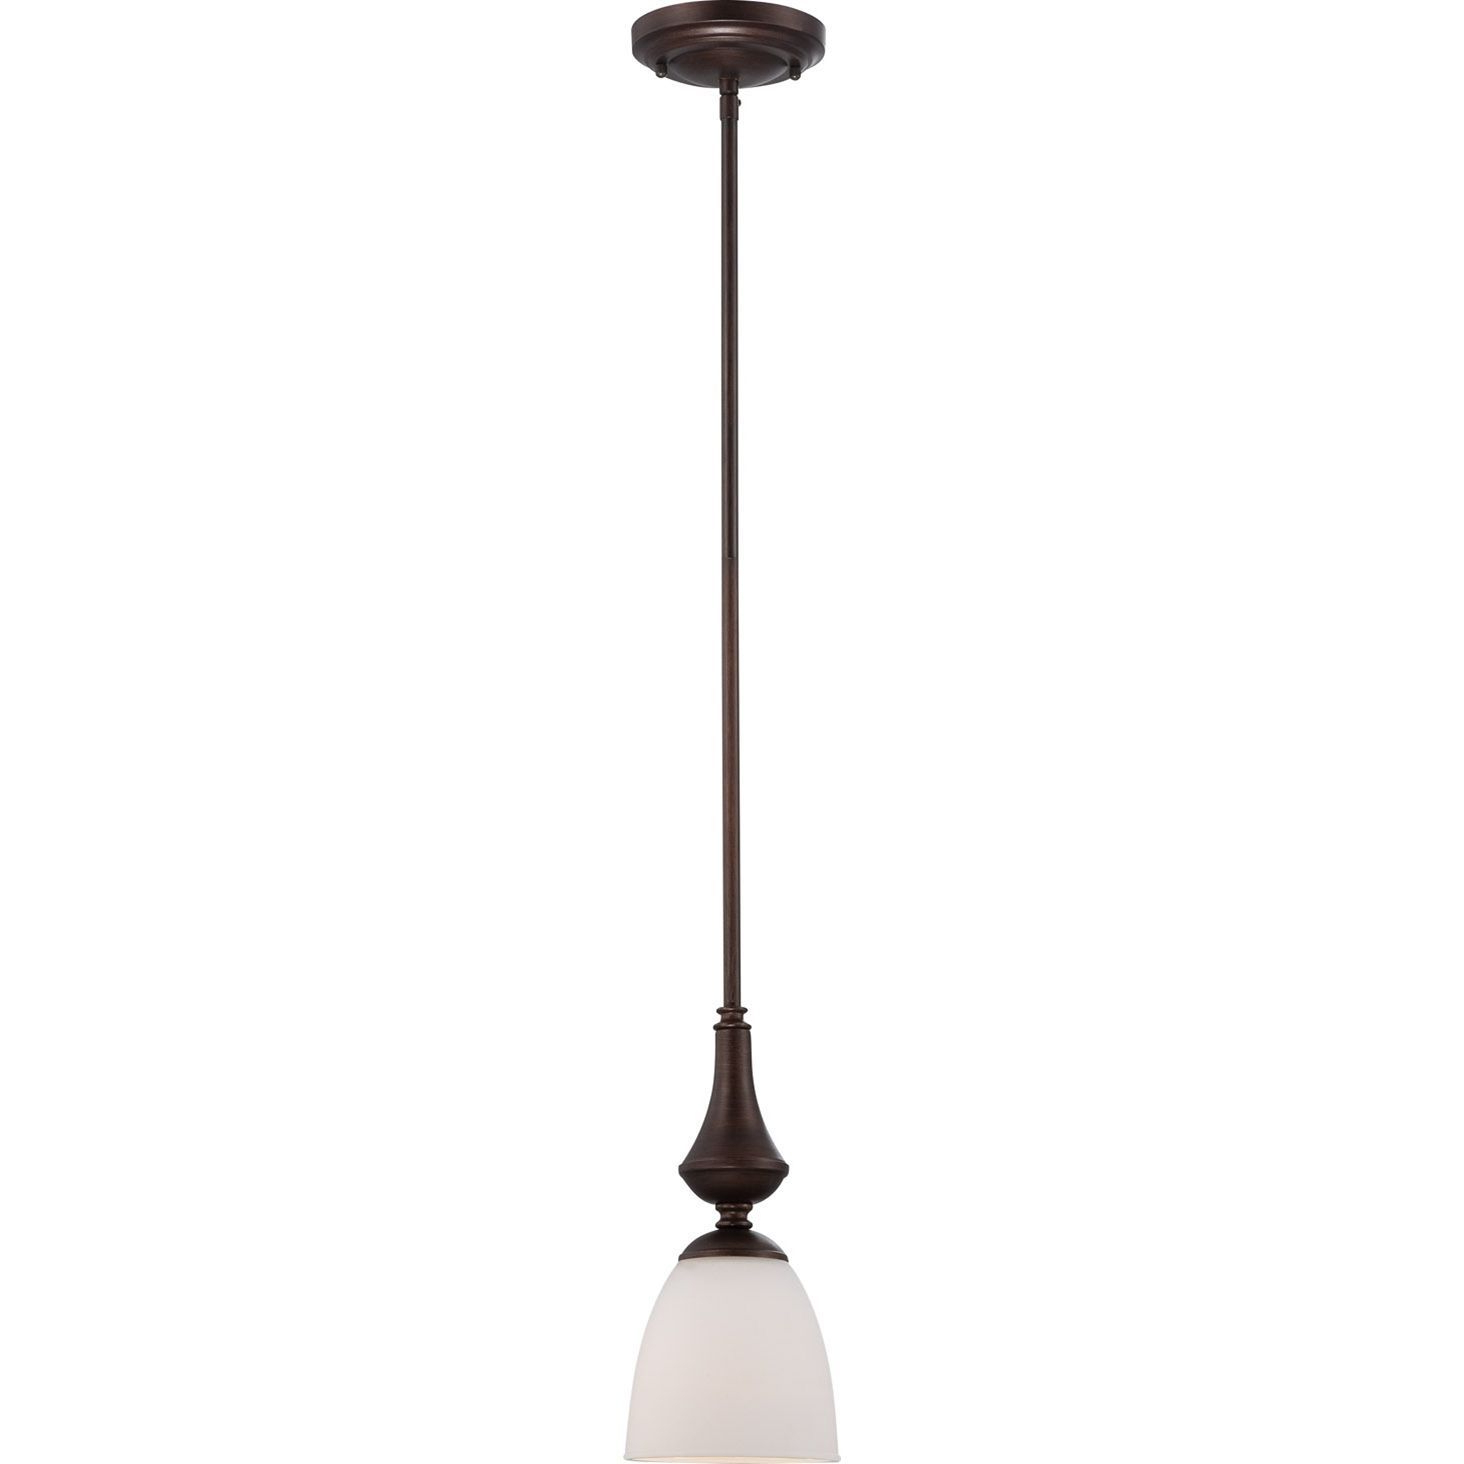 Nuvo Patton 1 Light Prairie Bronze Mini Pendant In 2019 Throughout Most Current Grullon Scroll 1 Light Single Bell Pendants (Gallery 15 of 20)